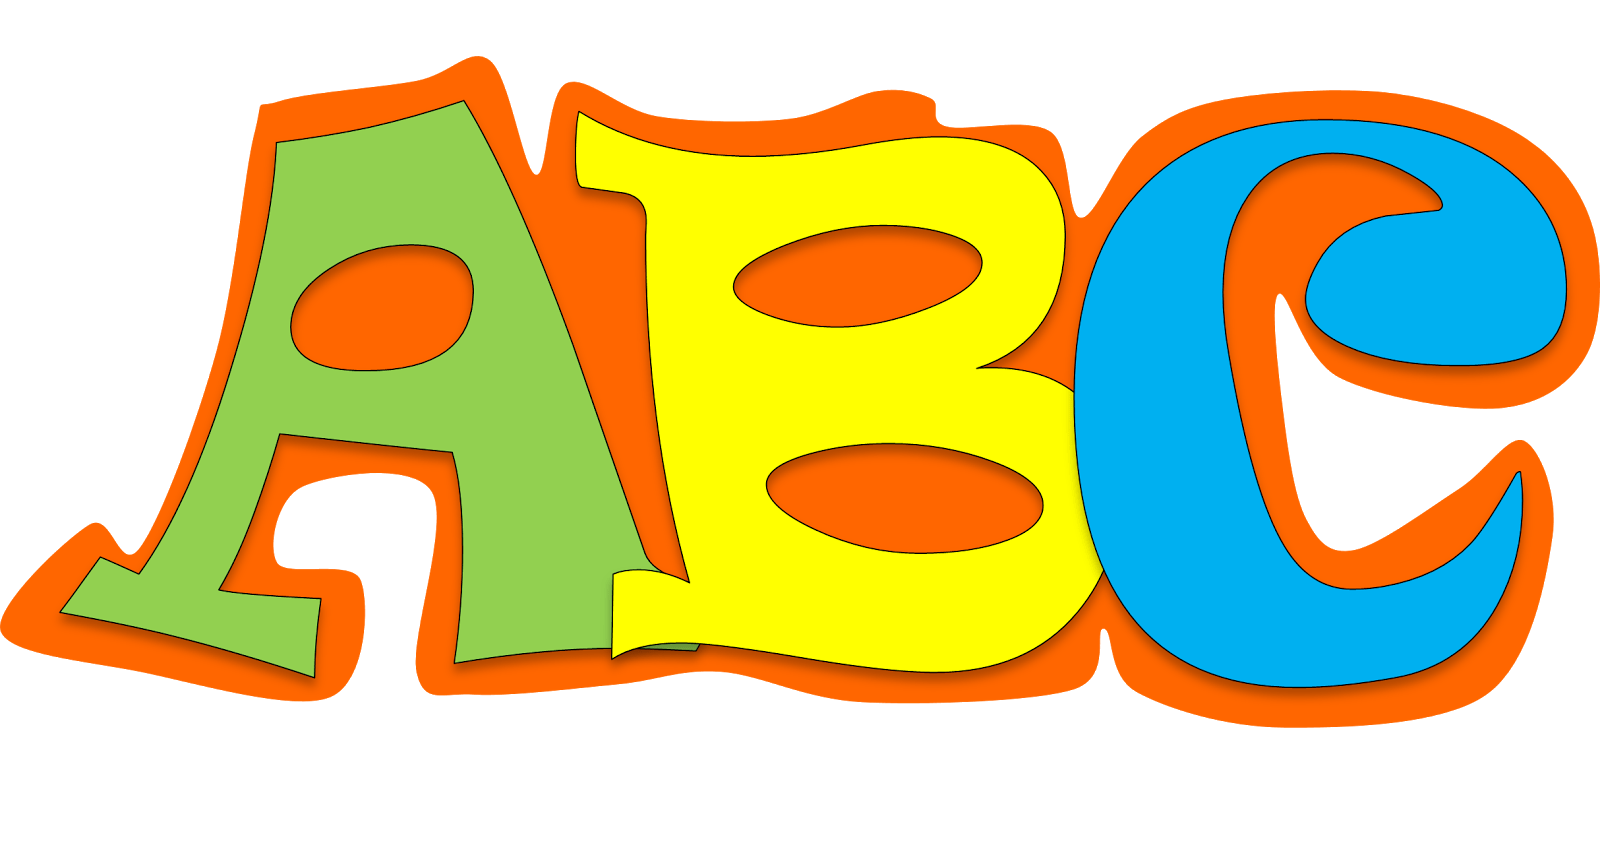 Abc and number clipart png free download Abc Clip Art png free download